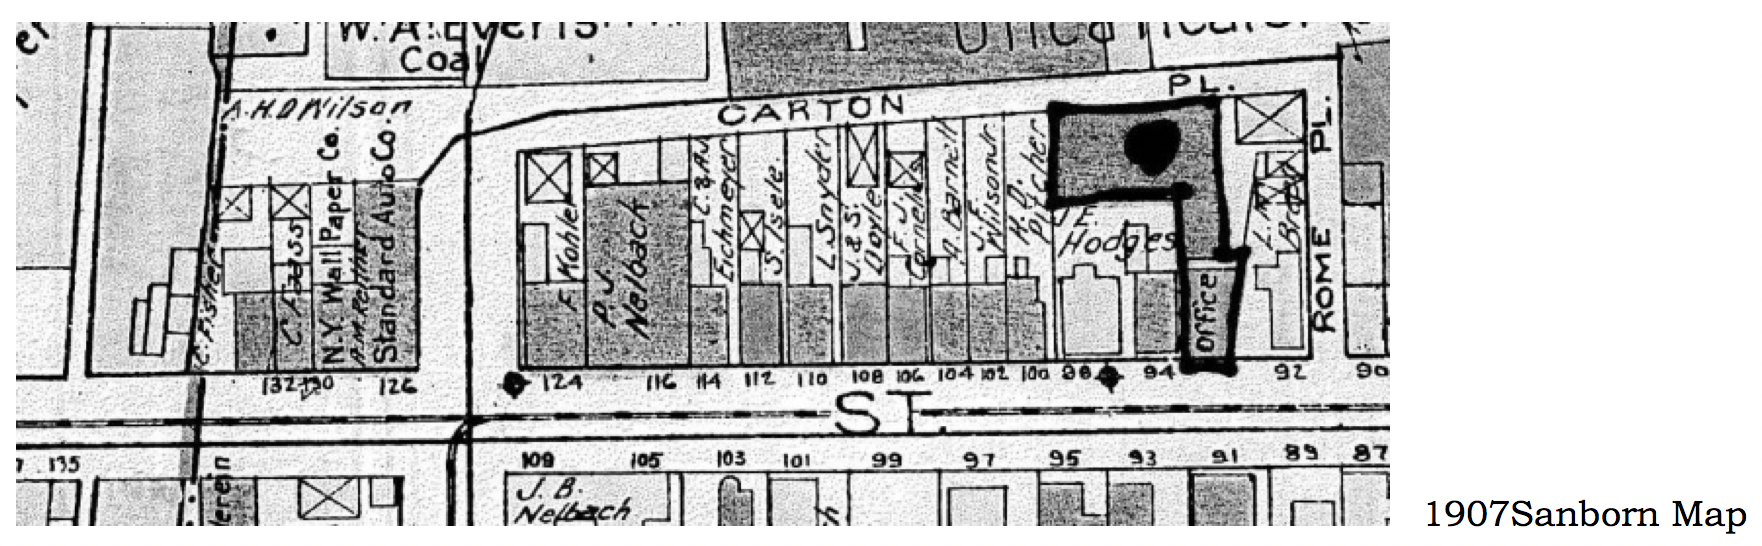 POLICE STATION FAYETTE ST TO COURT ST ATLAS MAP CITY HALL 1883 UTICA NEW YORK